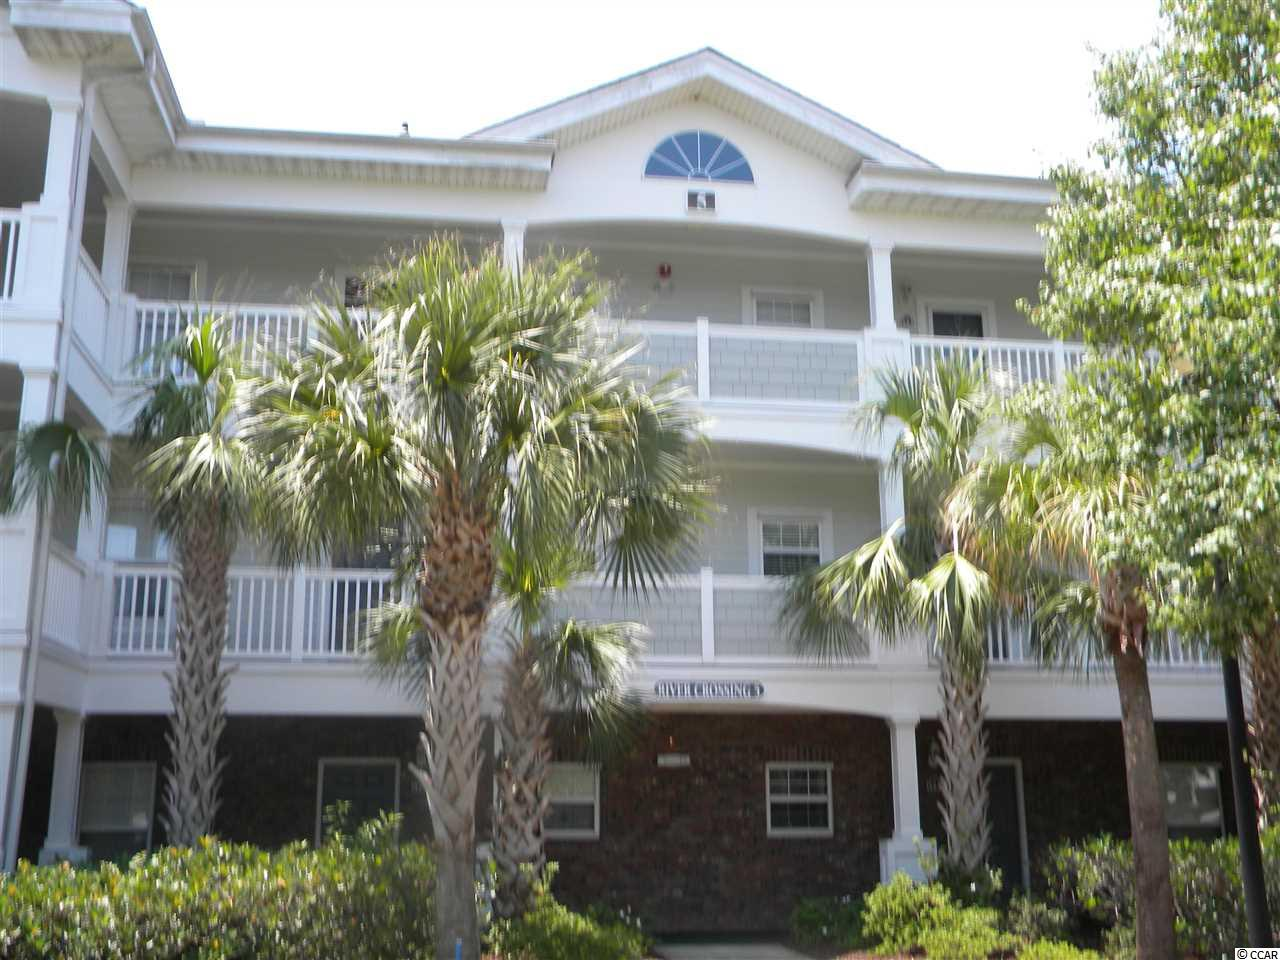 Fully furnished two bed, two bath golf villa in Barefoot Resort's Rivers Crossing community. This is an end unit located on the third floor with cathedral ceilings, lots of natural ight and an open floorplan. Barefoot Resorts has great amenities including a private and gated oceanfront beach cabana and seasonal shuttle service along with the use of a 15,000 square foot saltwater pool located in front of the North Tower on the ICW.